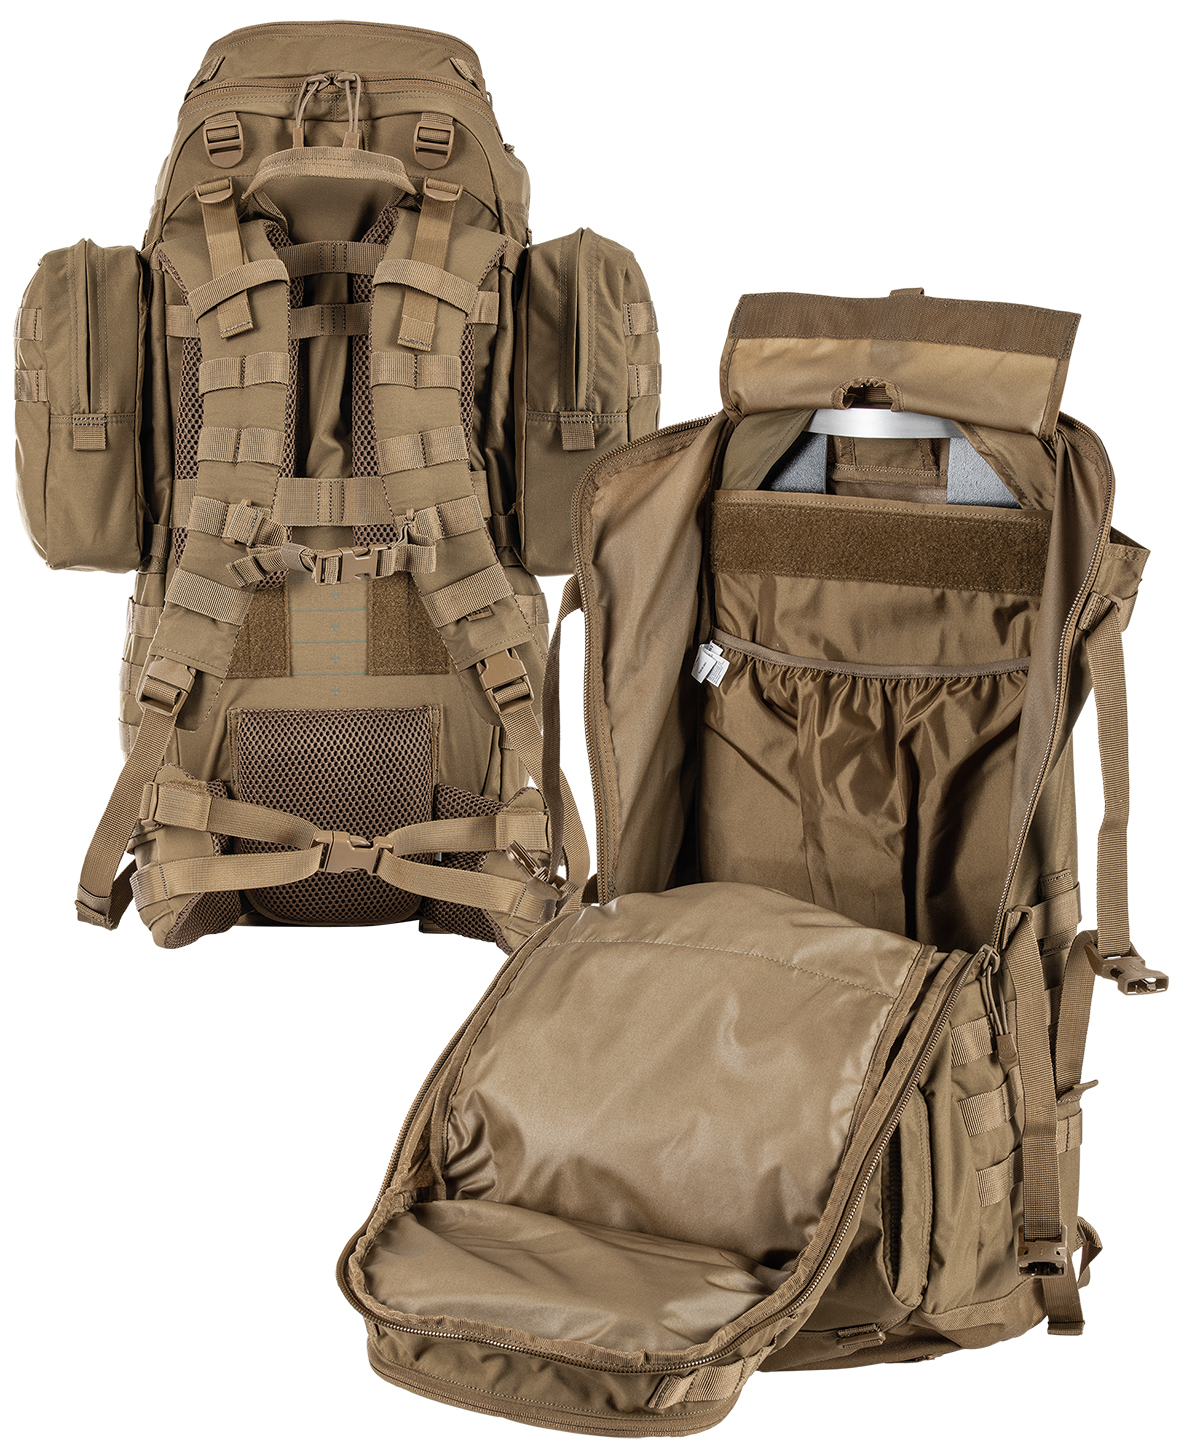 5.11 Tactical RUSH100 Rucksack 60 L